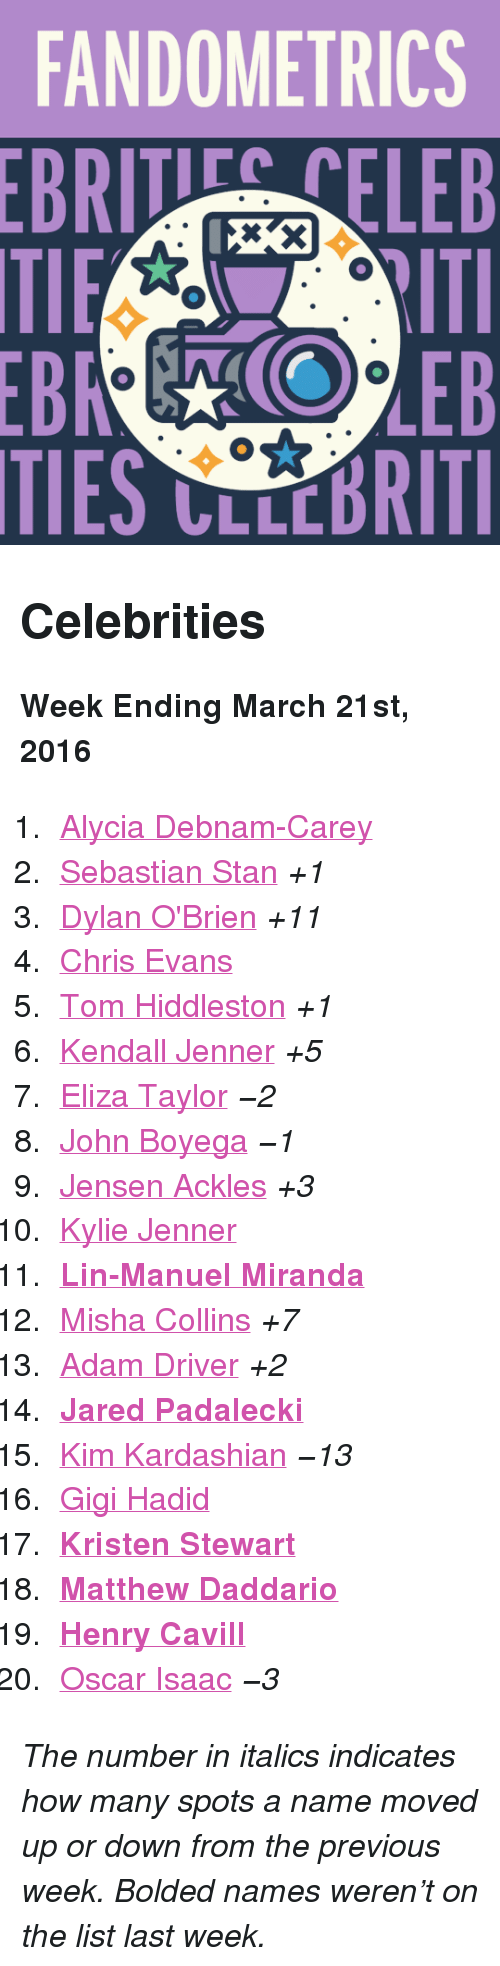 """Kristen Stewart: FANDOMETRICS  BRTELEB  TIES CLLCBRITI <h2>Celebrities</h2><p><b>Week Ending March 21st, 2016</b></p><ol><li><a href=""""http://www.tumblr.com/search/alycia%20debnam%20carey"""">Alycia Debnam-Carey</a></li>  <li><a href=""""http://www.tumblr.com/search/sebastian%20stan"""">Sebastian Stan</a><i>+1</i></li>  <li><a href=""""http://www.tumblr.com/search/dylan%20o'brien"""">Dylan O'Brien</a><i>+11</i></li>  <li><a href=""""http://www.tumblr.com/search/chris%20evans"""">Chris Evans</a></li>  <li><a href=""""http://www.tumblr.com/search/tom%20hiddleston"""">Tom Hiddleston</a><i>+1</i></li>  <li><a href=""""http://www.tumblr.com/search/kendall%20jenner"""">Kendall Jenner</a><i>+5</i></li>  <li><a href=""""http://www.tumblr.com/search/eliza%20taylor"""">Eliza Taylor</a><i><i>−2</i></i></li>  <li><a href=""""http://www.tumblr.com/search/john%20boyega"""">John Boyega</a><i><i>−1</i></i></li>  <li><a href=""""http://www.tumblr.com/search/jensen%20ackles"""">Jensen Ackles</a><i>+3</i></li>  <li><a href=""""http://www.tumblr.com/search/kylie%20jenner"""">Kylie Jenner</a></li>  <li><b><a href=""""http://www.tumblr.com/search/lin%20manuel%20miranda"""">Lin-Manuel Miranda</a></b></li>  <li><a href=""""http://www.tumblr.com/search/misha%20collins"""">Misha Collins</a><i>+7</i></li>  <li><a href=""""http://www.tumblr.com/search/adam%20driver"""">Adam Driver</a><i>+2</i></li>  <li><b><a href=""""http://www.tumblr.com/search/jared%20padalecki"""">Jared Padalecki</a></b></li>  <li><a href=""""http://www.tumblr.com/search/kim%20kardashian"""">Kim Kardashian</a><i><i>−13</i></i></li>  <li><a href=""""http://www.tumblr.com/search/gigi%20hadid"""">Gigi Hadid</a></li>  <li><a href=""""http://www.tumblr.com/search/kristen%20stewart""""><b>Kristen Stewart</b></a></li>  <li><a href=""""http://www.tumblr.com/search/matthew%20daddario""""><b>Matthew Daddario</b></a></li>  <li><a href=""""http://www.tumblr.com/search/henry%20cavill""""><b>Henry Cavill</b></a></li>  <li><a href=""""http://www.tumblr.com/search/oscar%20isaac"""">Oscar Isaac</a><i><i>−3</i></i></li></ol><p><i>The number in italics indi"""